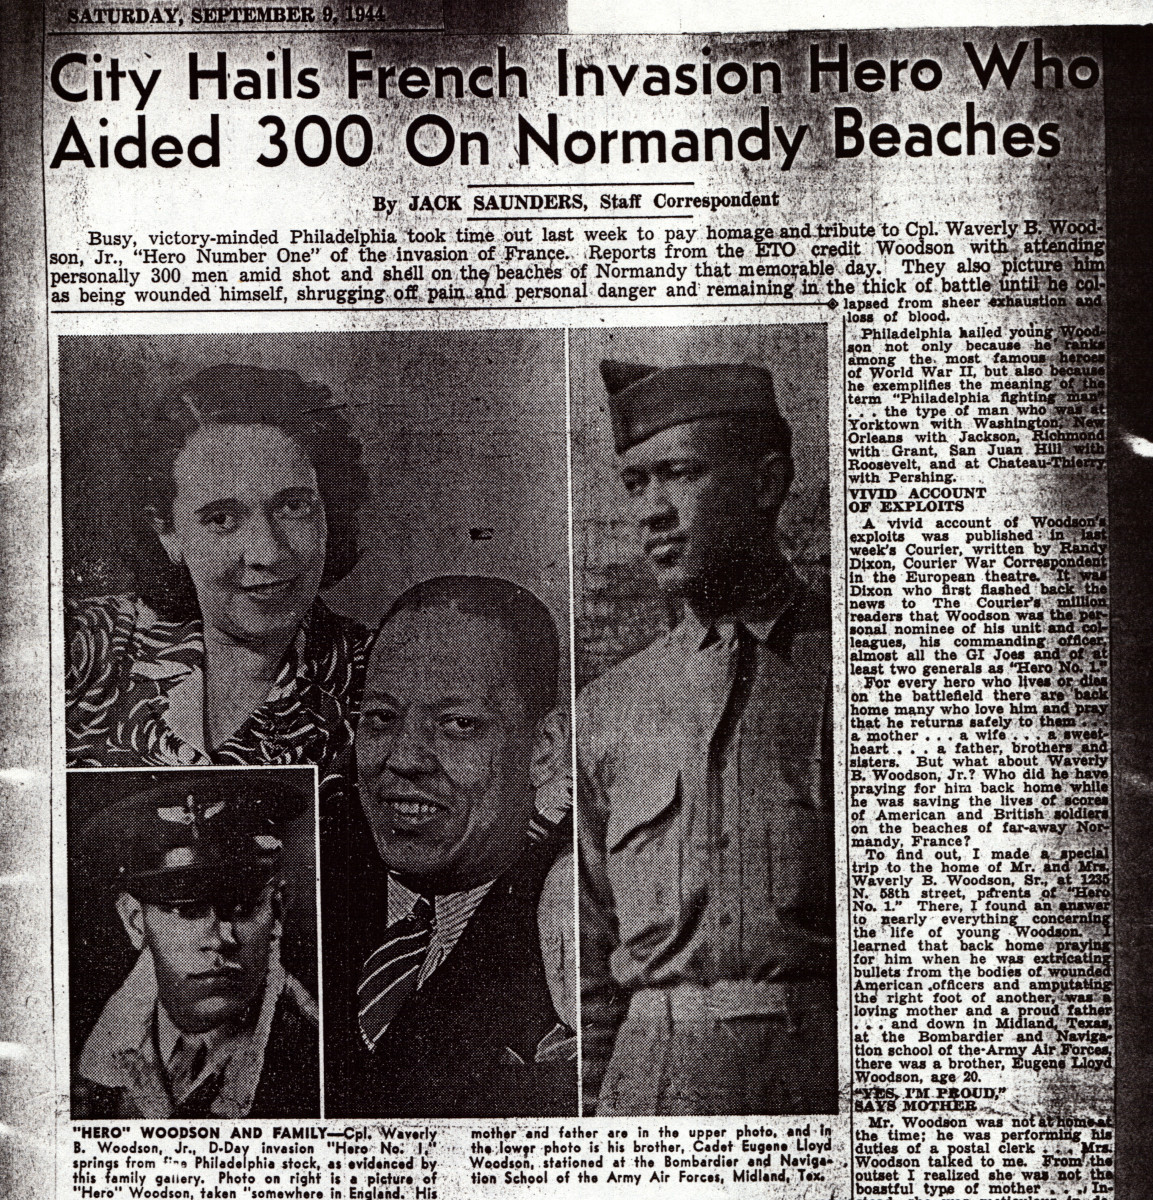 Waverly Woodson, Jr. was hailed as a hero by newspapers after D-Day in 1944.